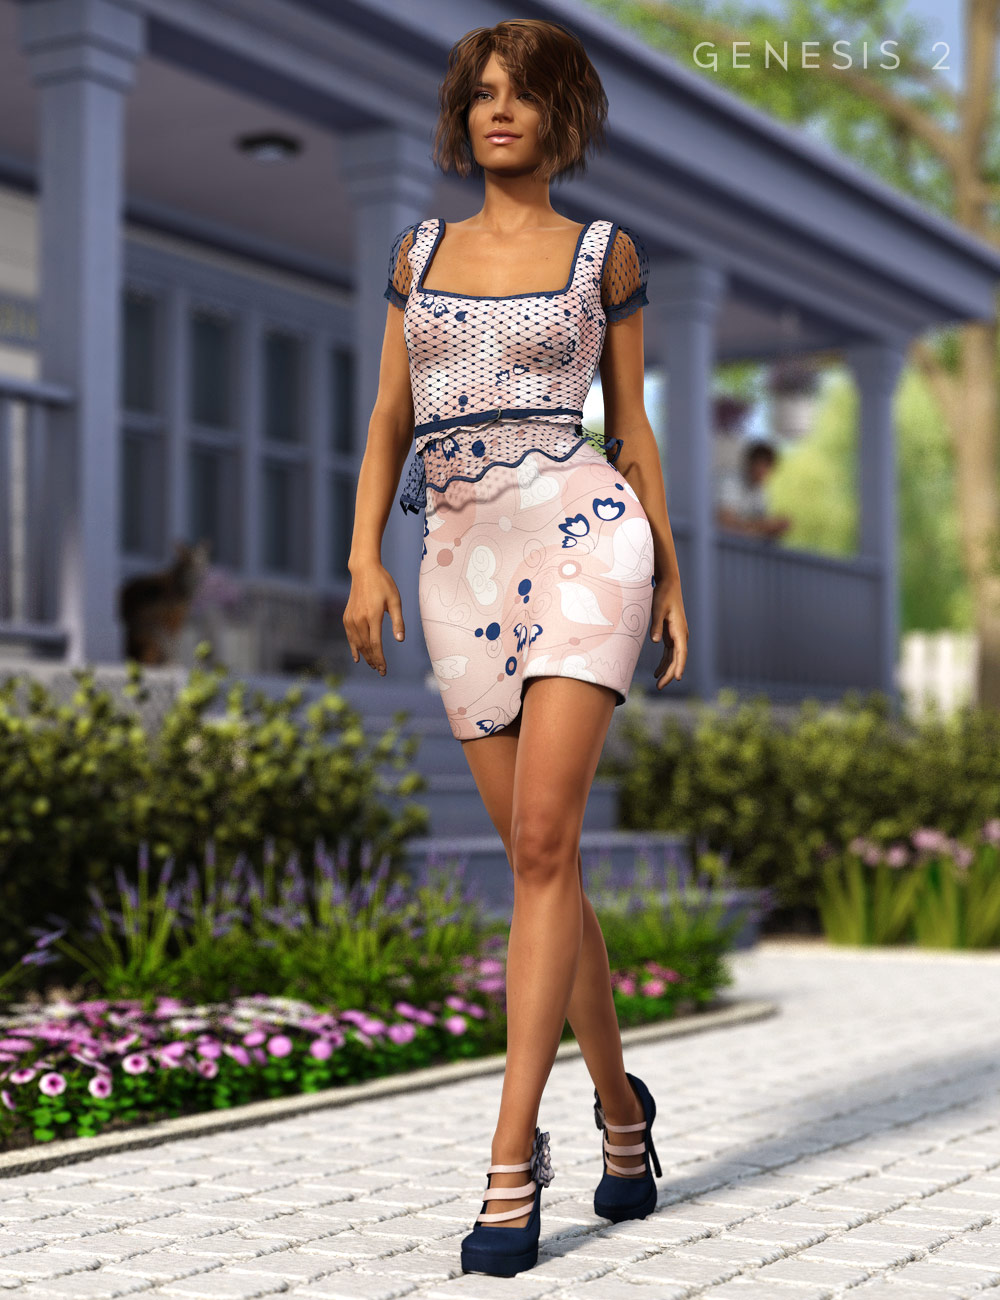 Peplum Dress and Blossom Shoes for Genesis 2 Female(s) by: Barbara BrundonSarsa, 3D Models by Daz 3D